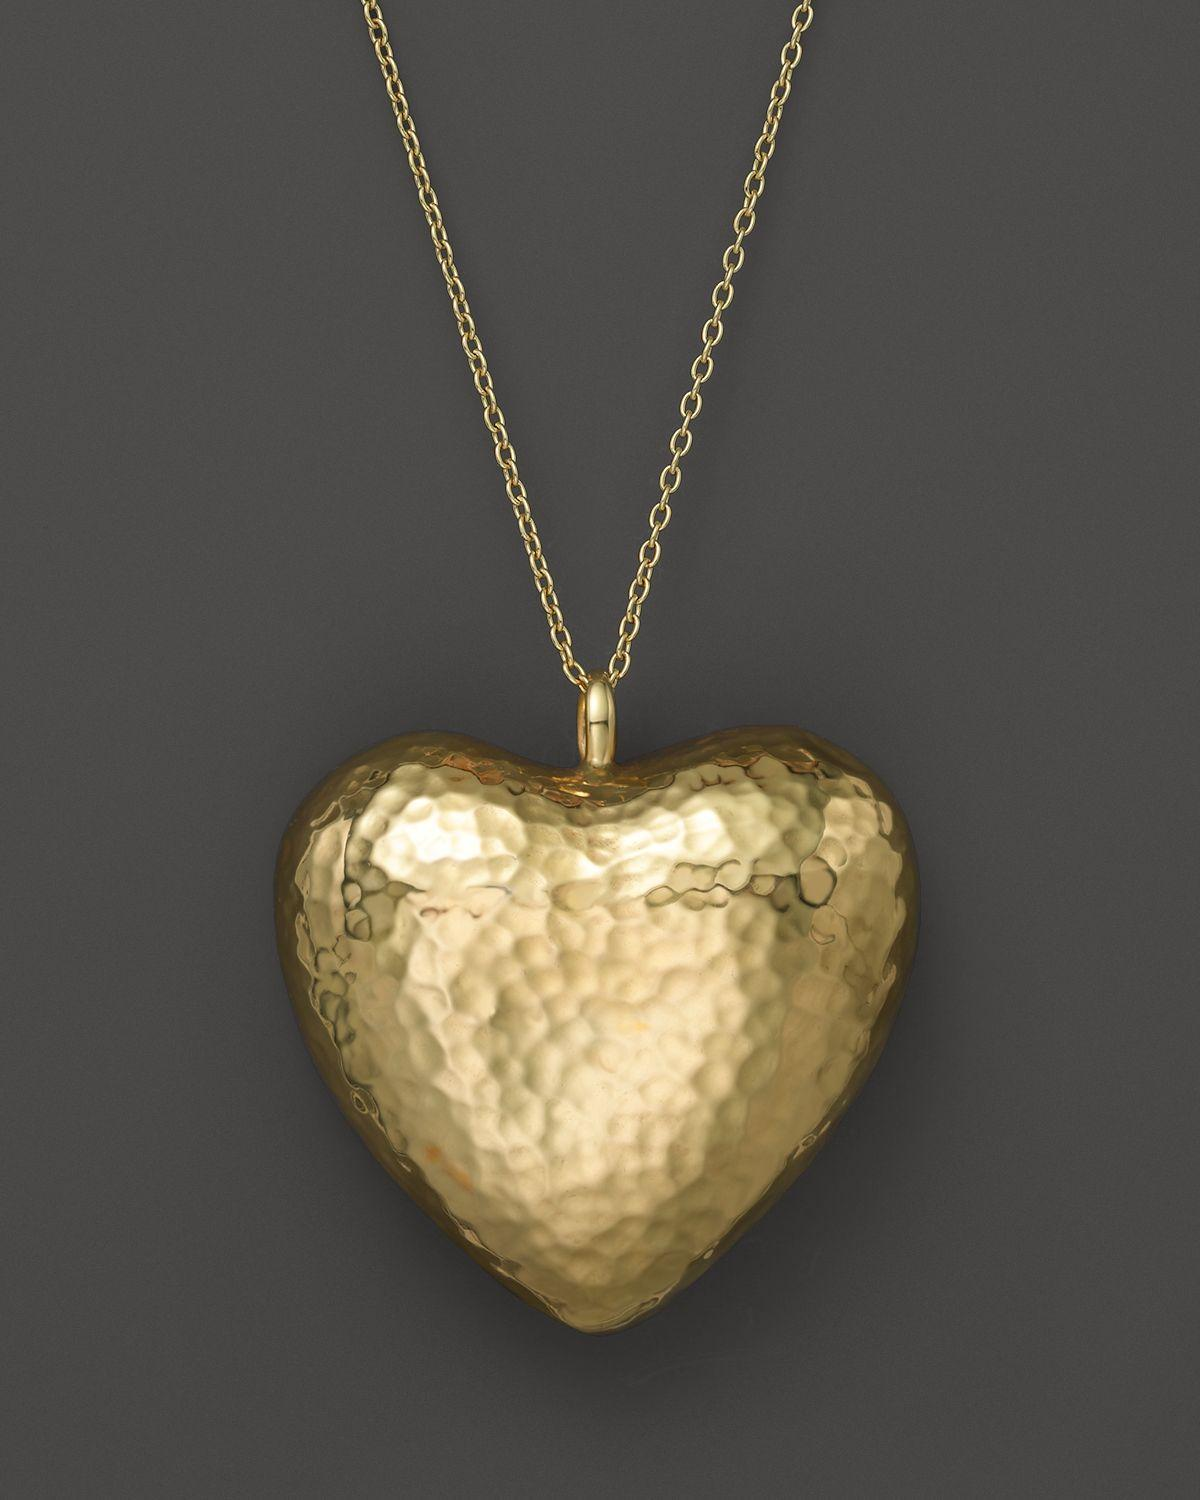 Lyst ippolita glamazon 18k gold large heart pendant necklace 33 gallery mozeypictures Gallery